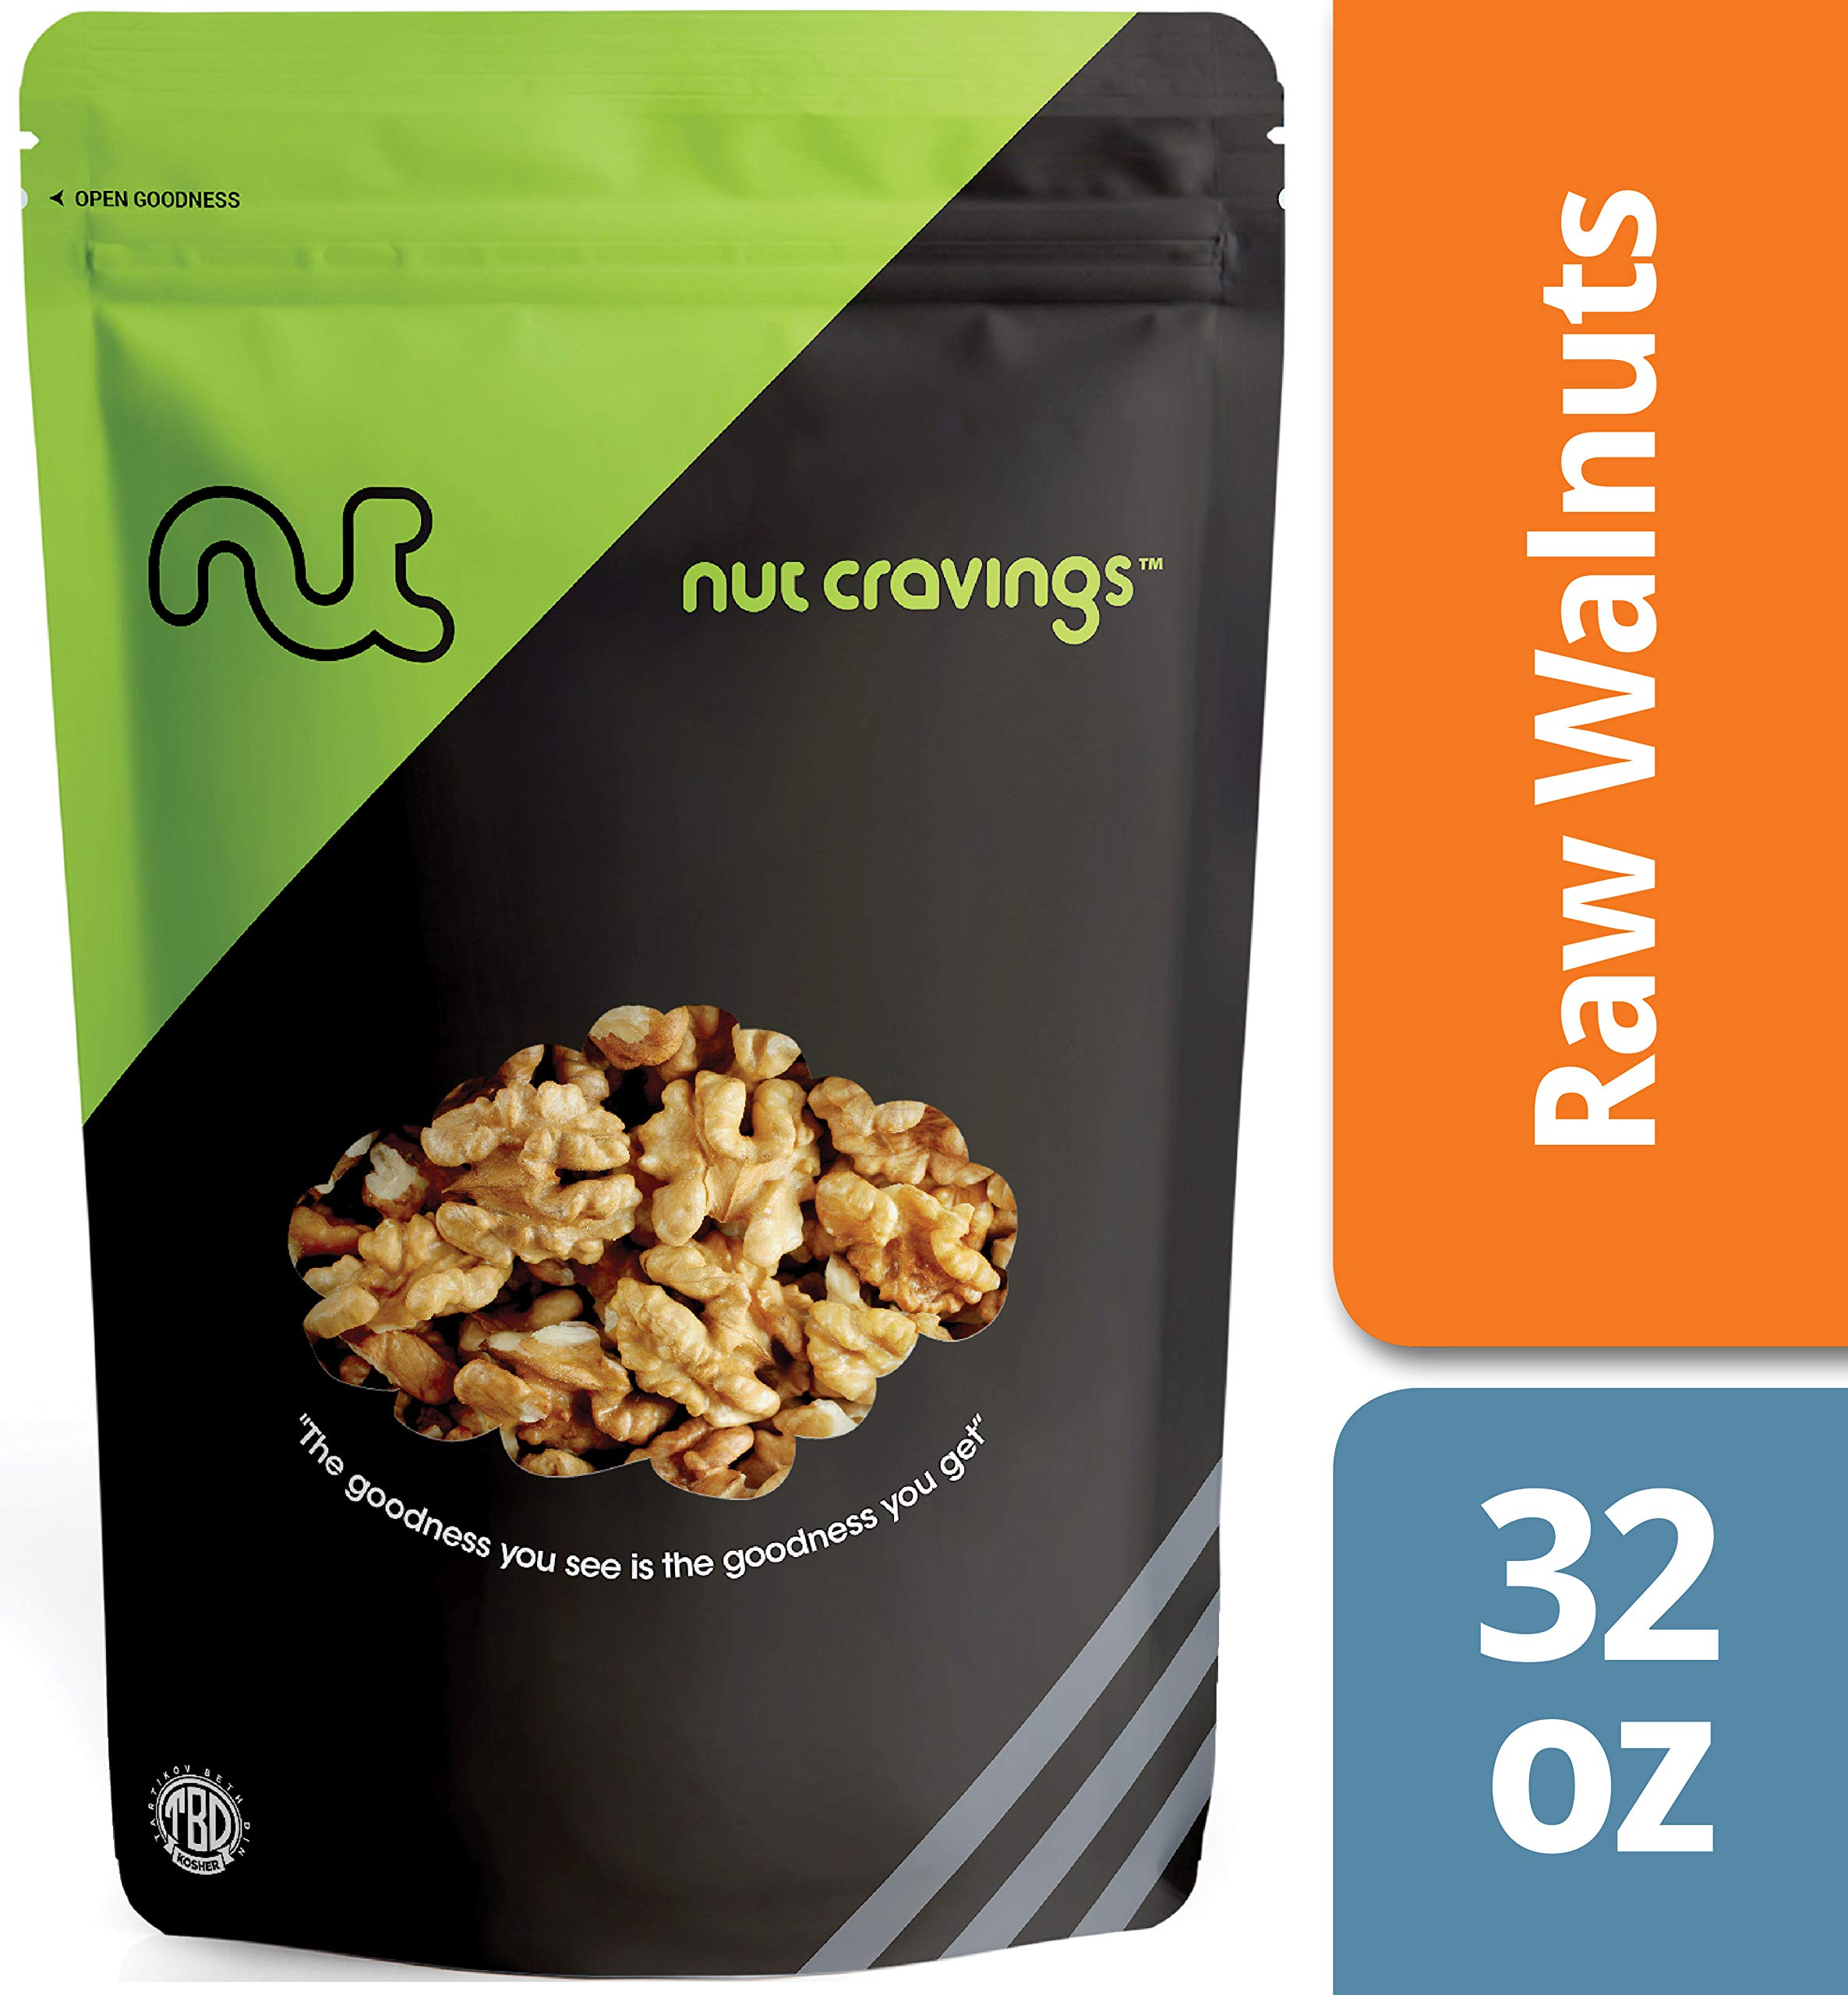 Nut Cravings California Raw Walnuts (2 Pounds) - 100% All Natural Shelled Halves and Pieces - 32 Ounce by Nut Cravings